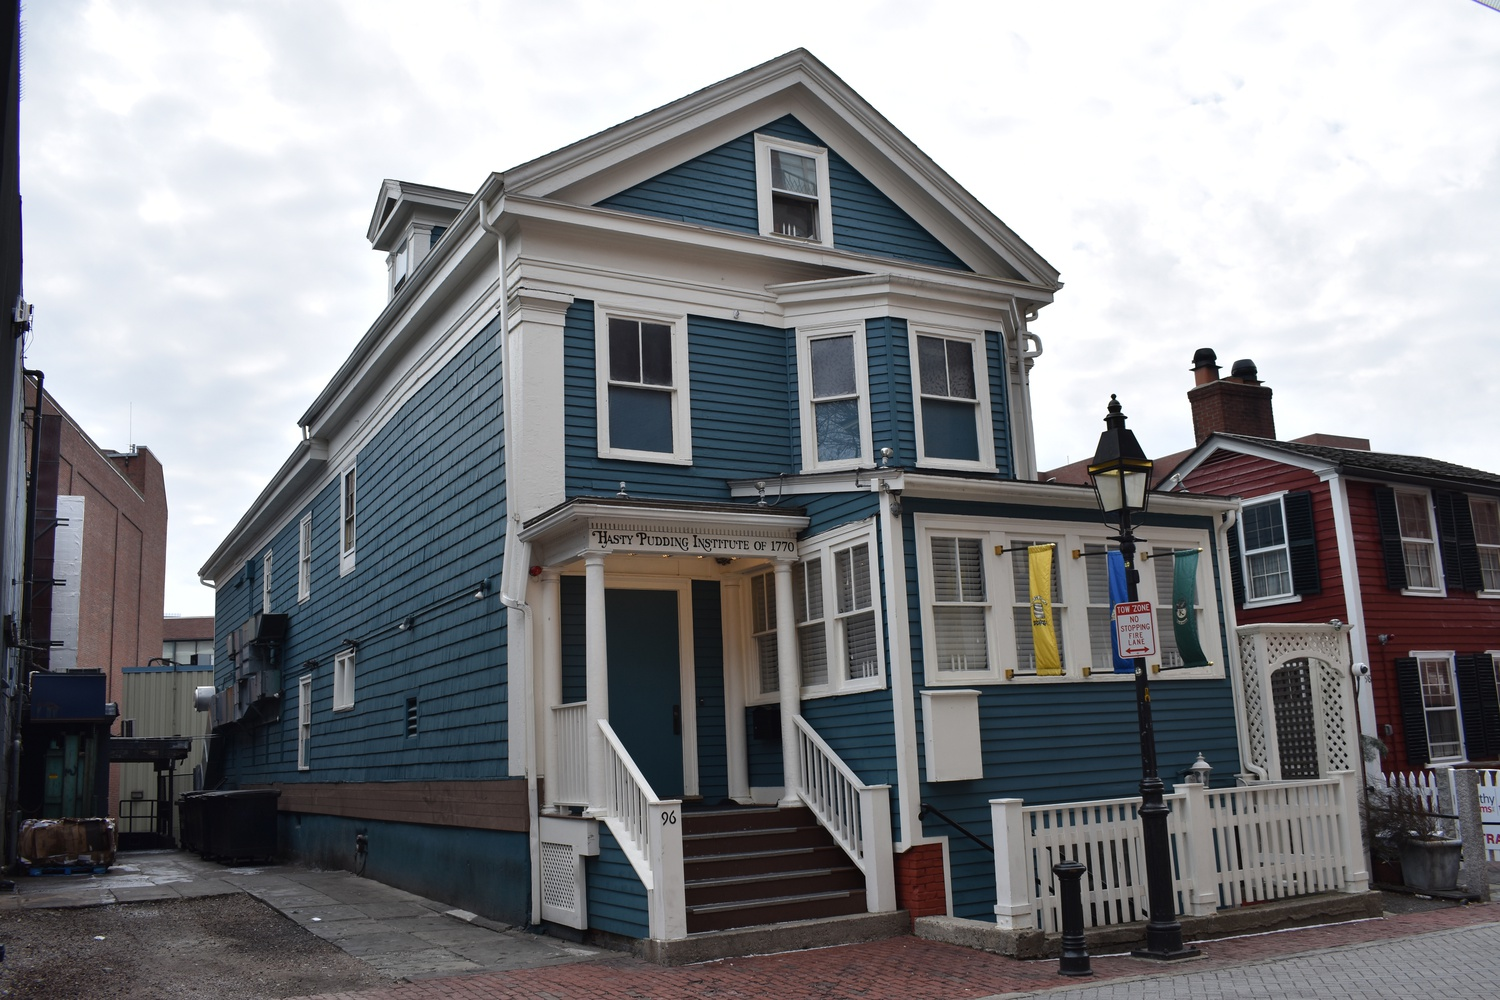 The building at 96 Winthrop St. — formerly home of the Hasty Pudding Institute of 1770 — is set to be home to seafood chain The Boiling Crab.